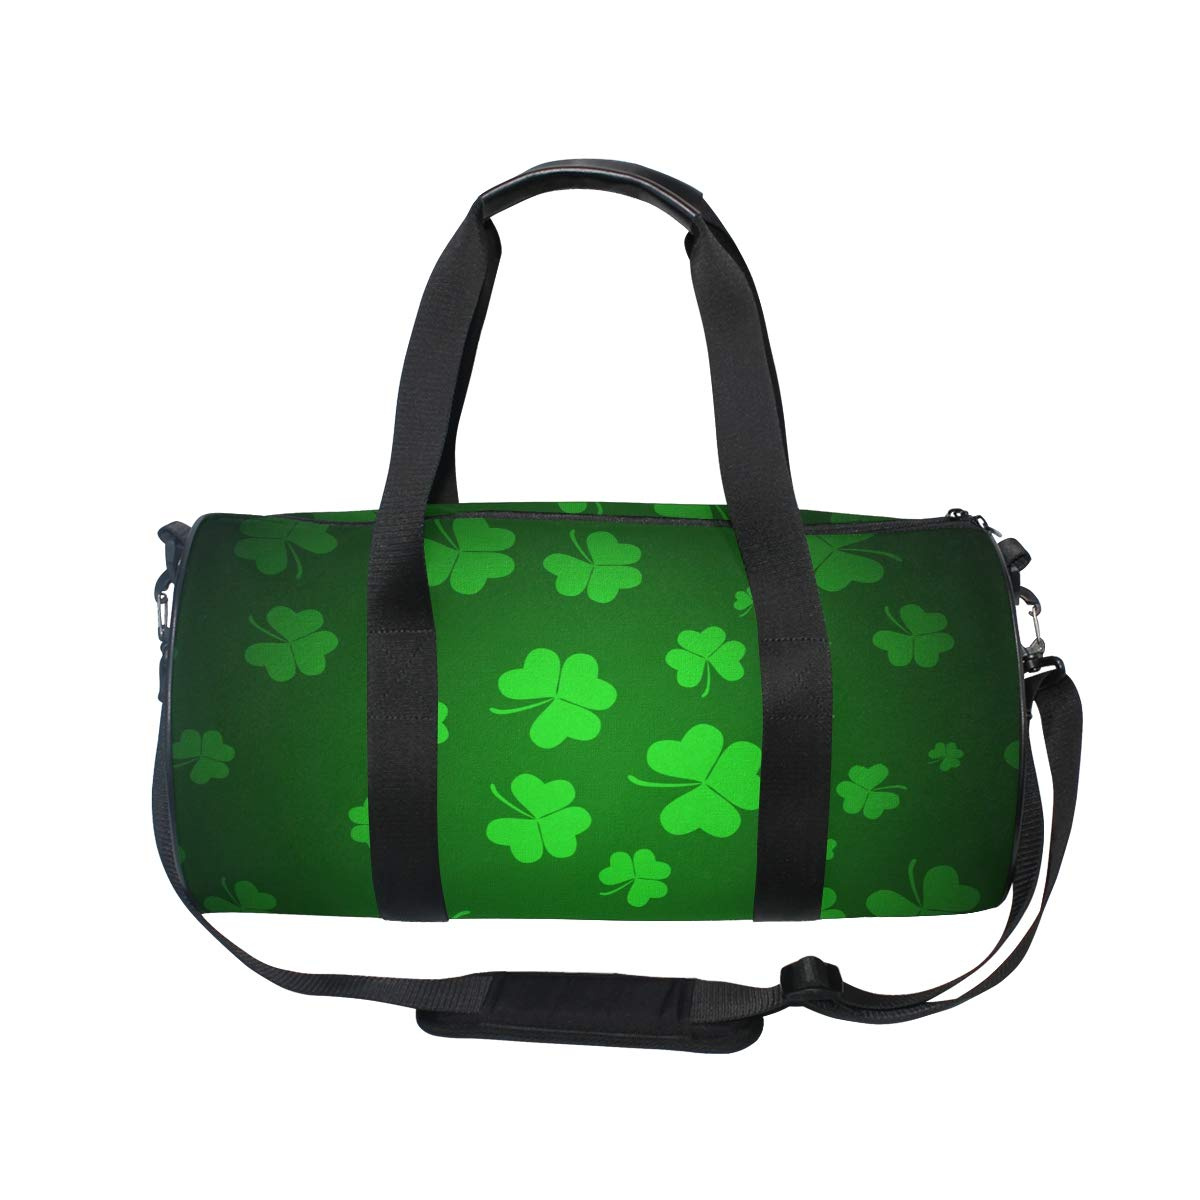 b8e18d862ab5 OuLian Sports Bag Four Leaf Lucky Clover Mens Duffle Luggage Travel Bags  Womens Lightweight Gym Bag